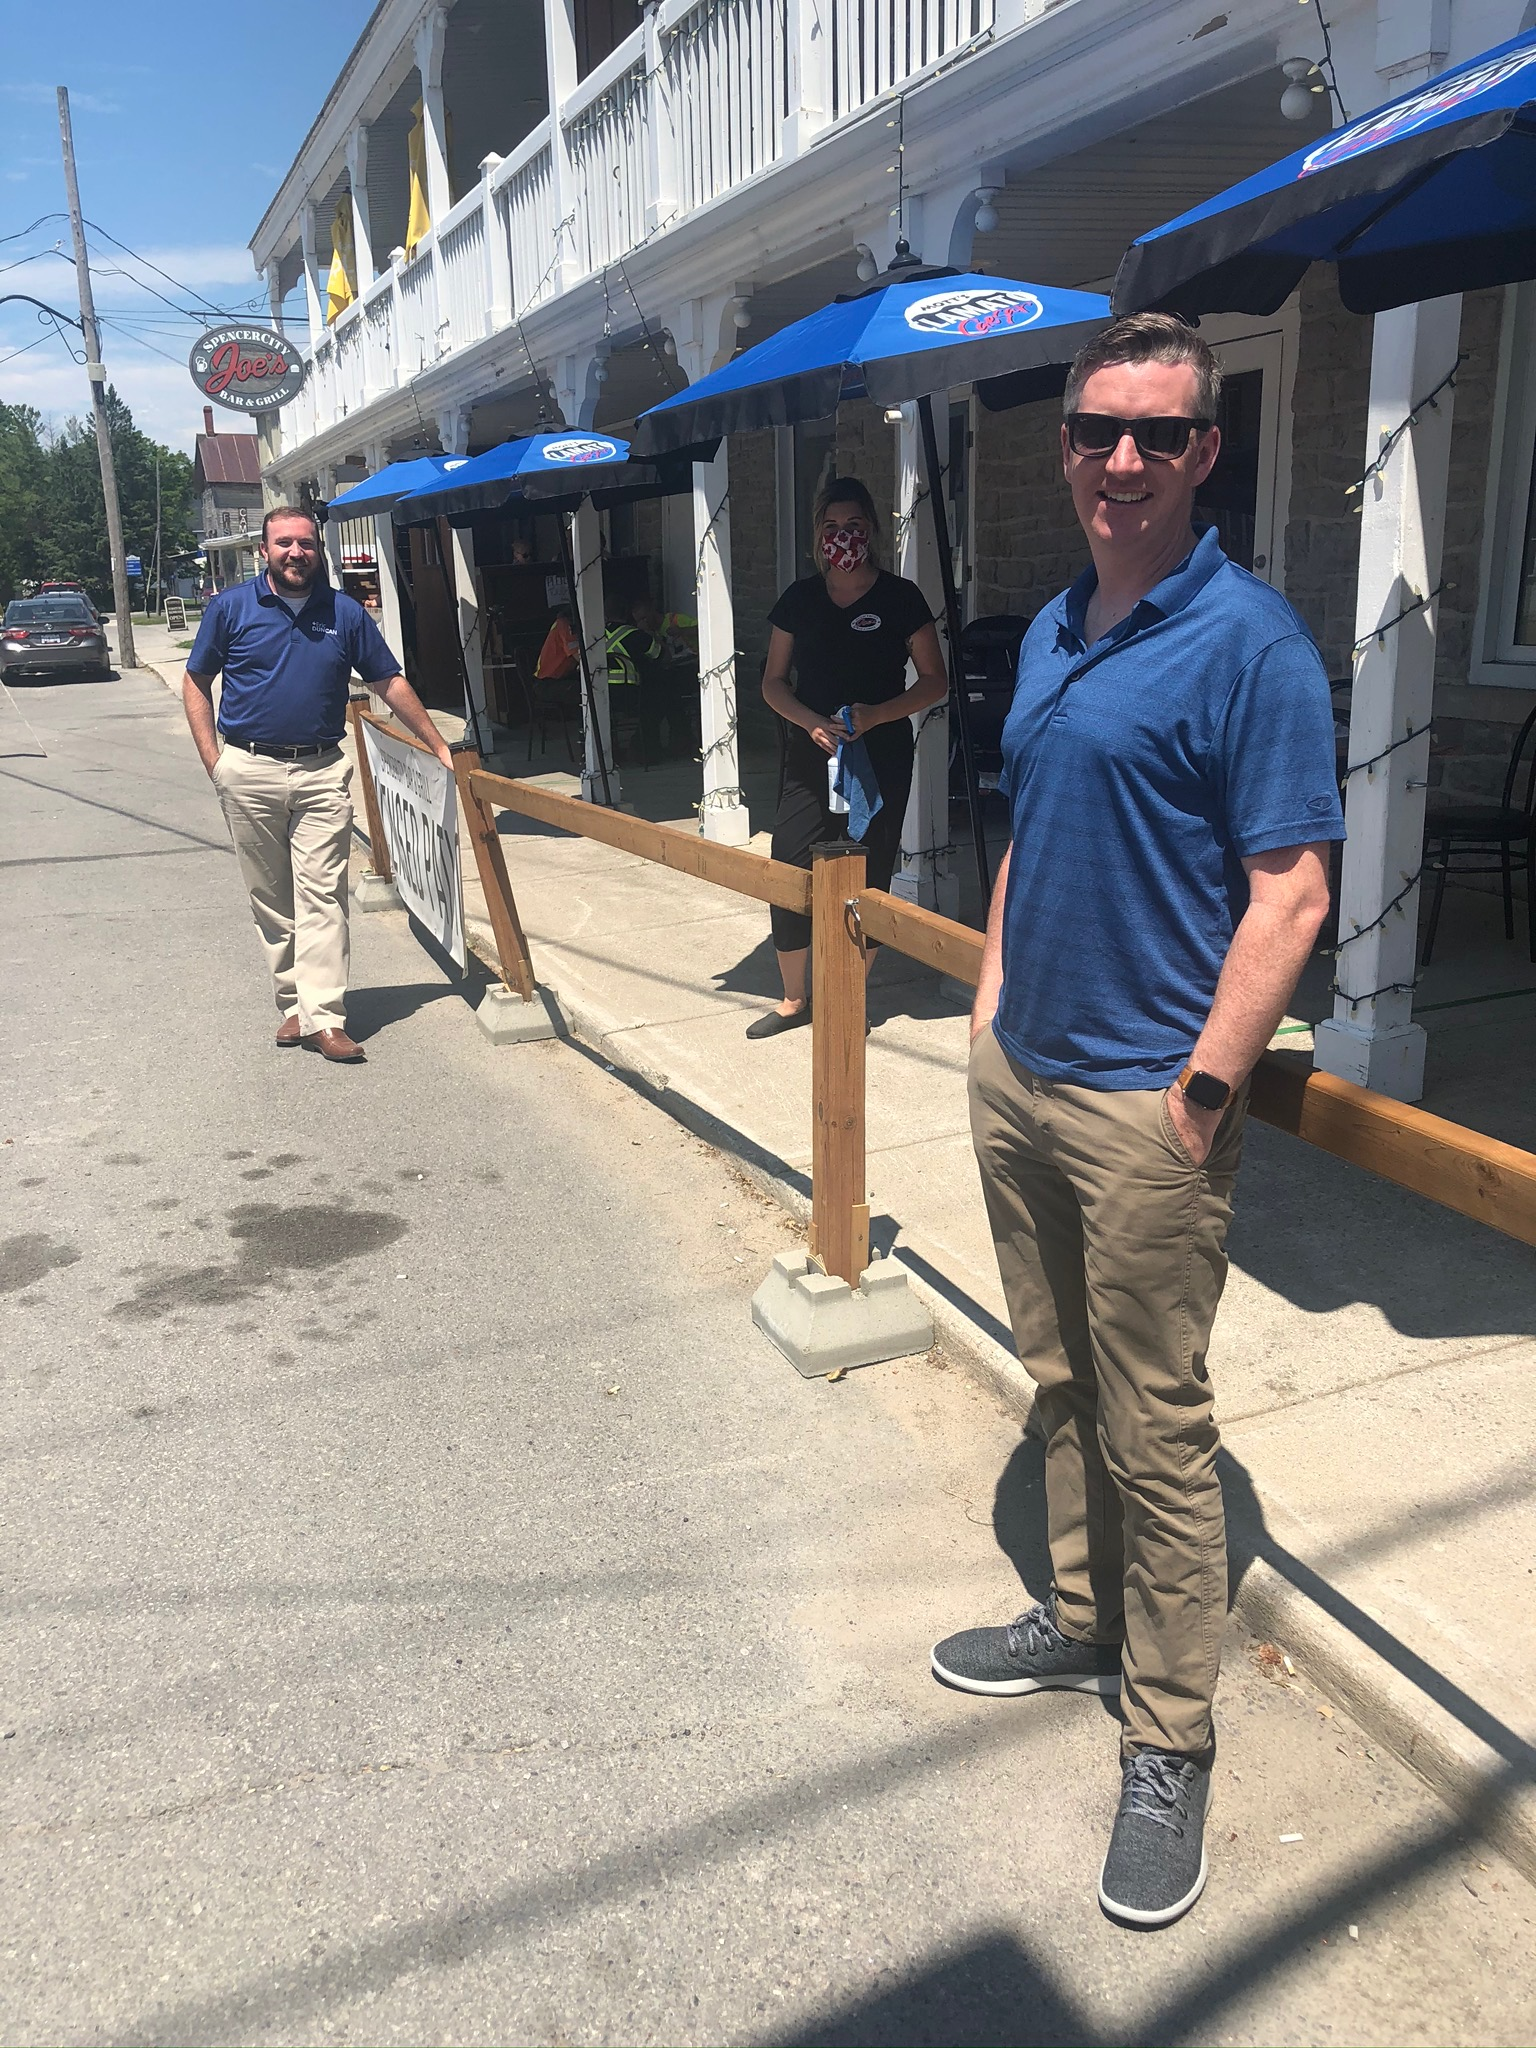 It was a beautiful day to visit businesses in downtown Spencerville